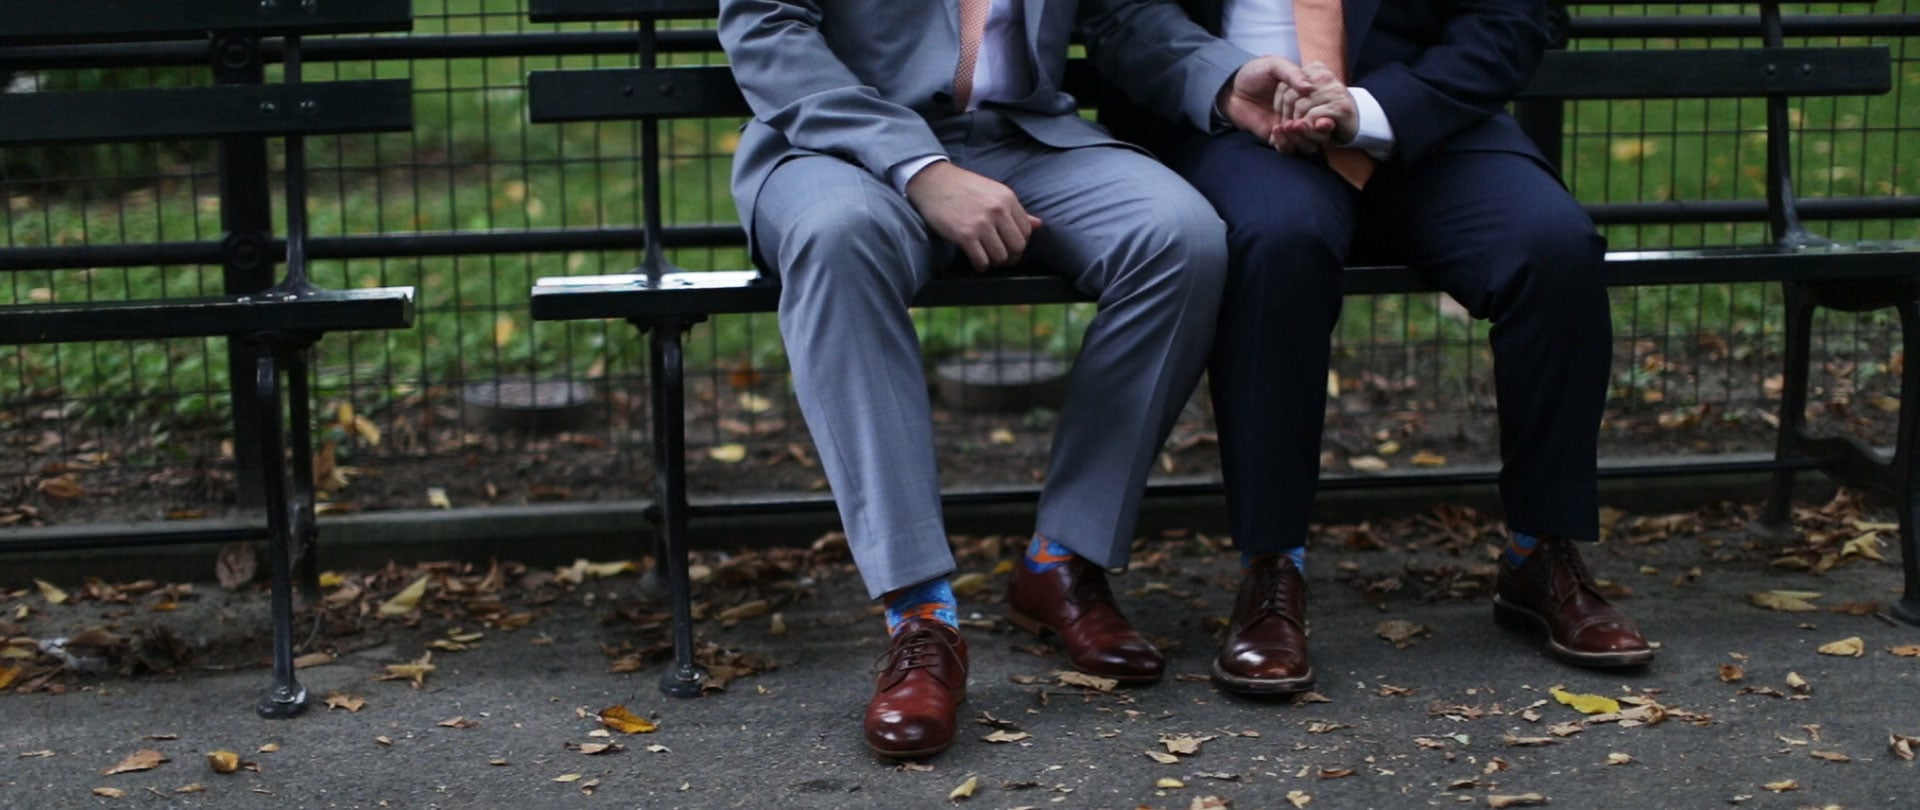 Dave and Chris Wedding Video Filmed at New York, United States